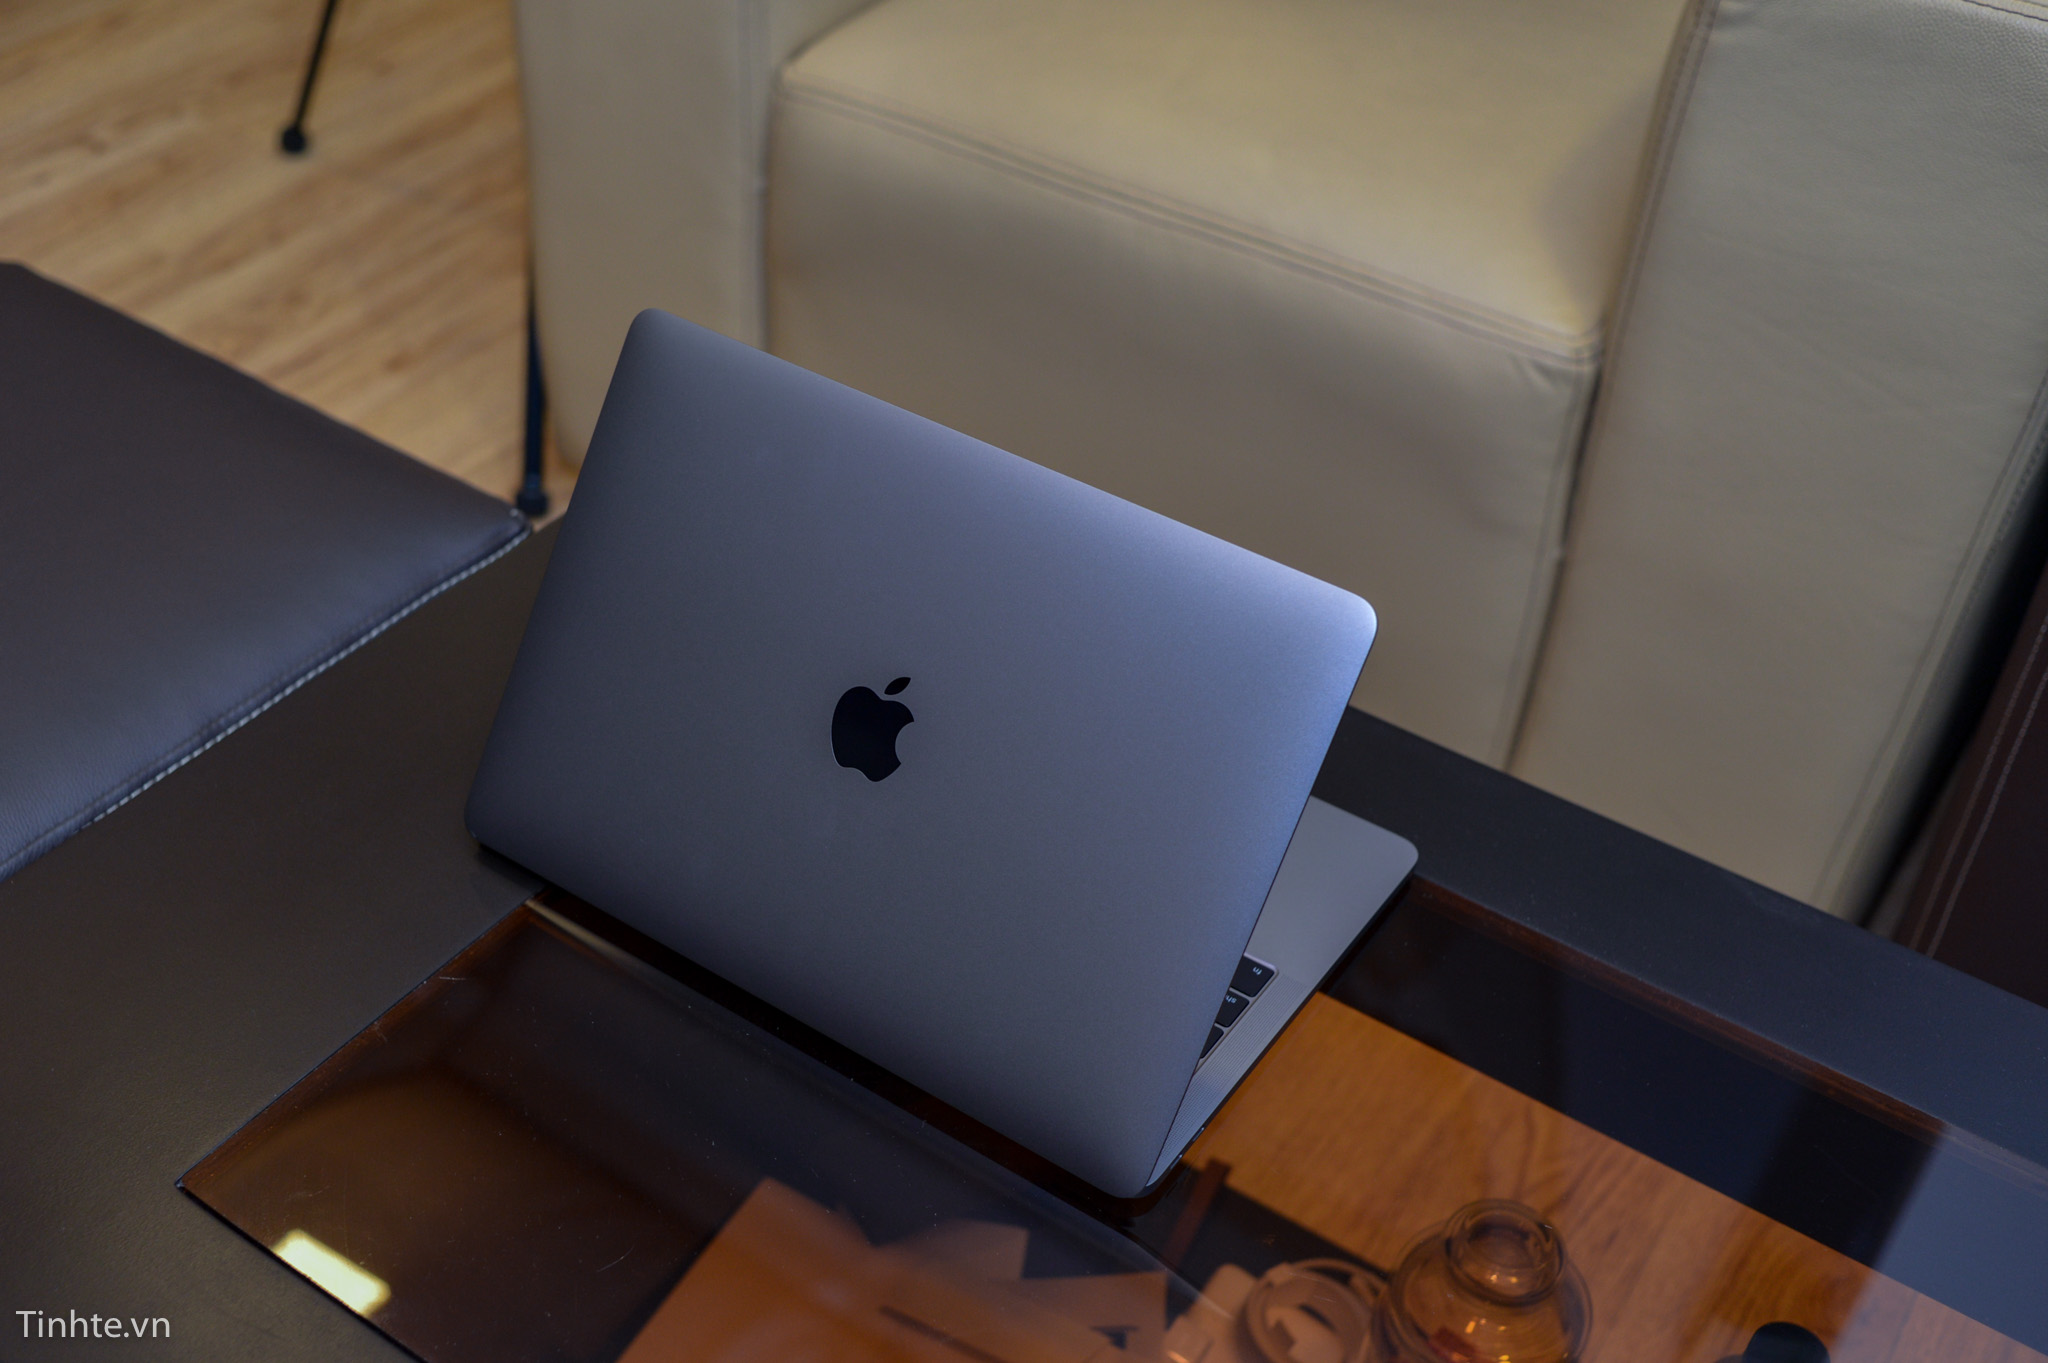 Macbook_Pro_13_late_2016-8.jpg